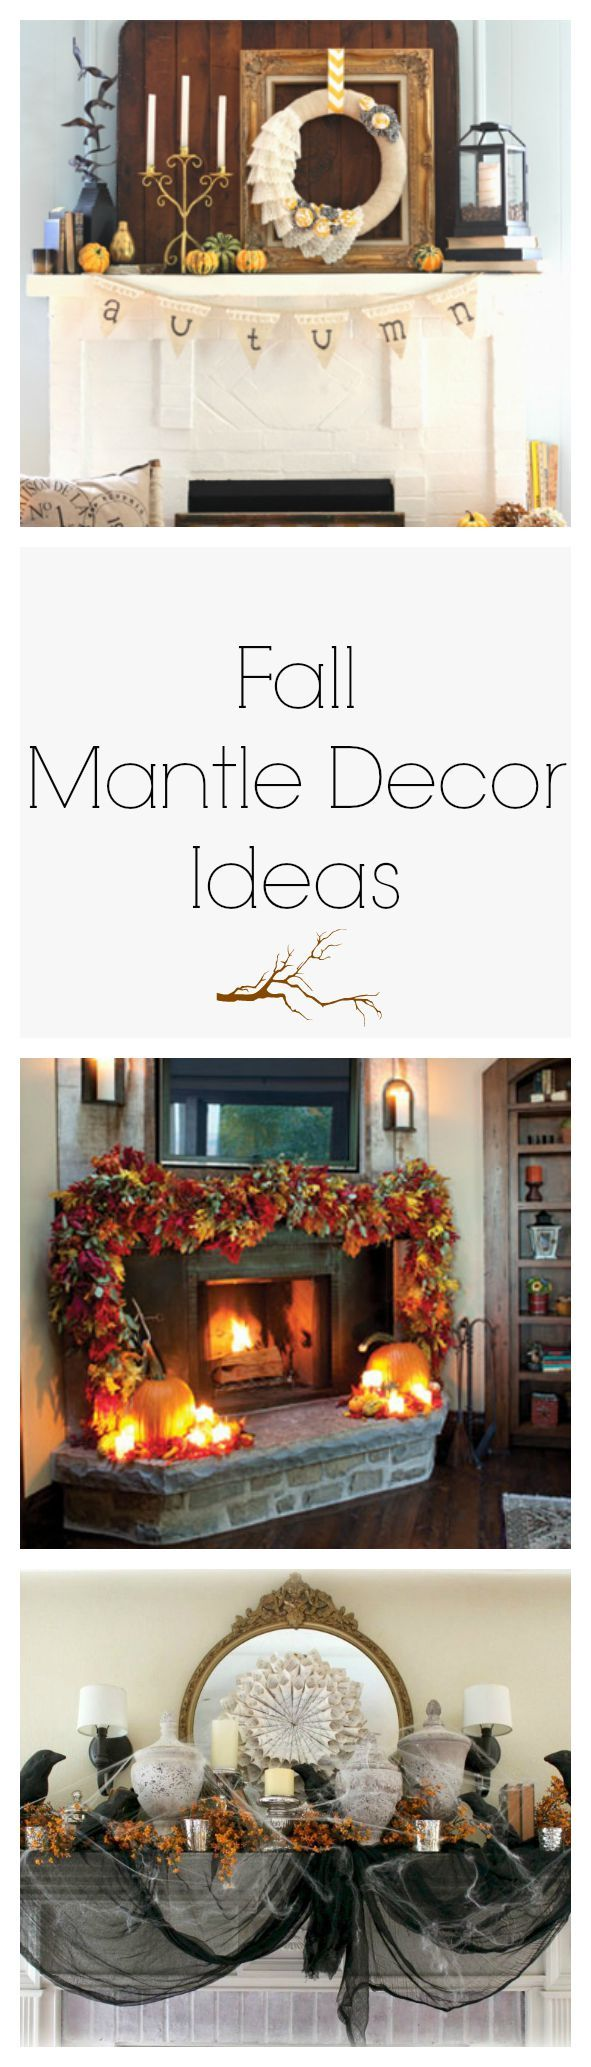 Give your fireplace a makeover this fall with these mantel decorating ideas that celebrate the autumn harvest, Halloween, and everything in between.